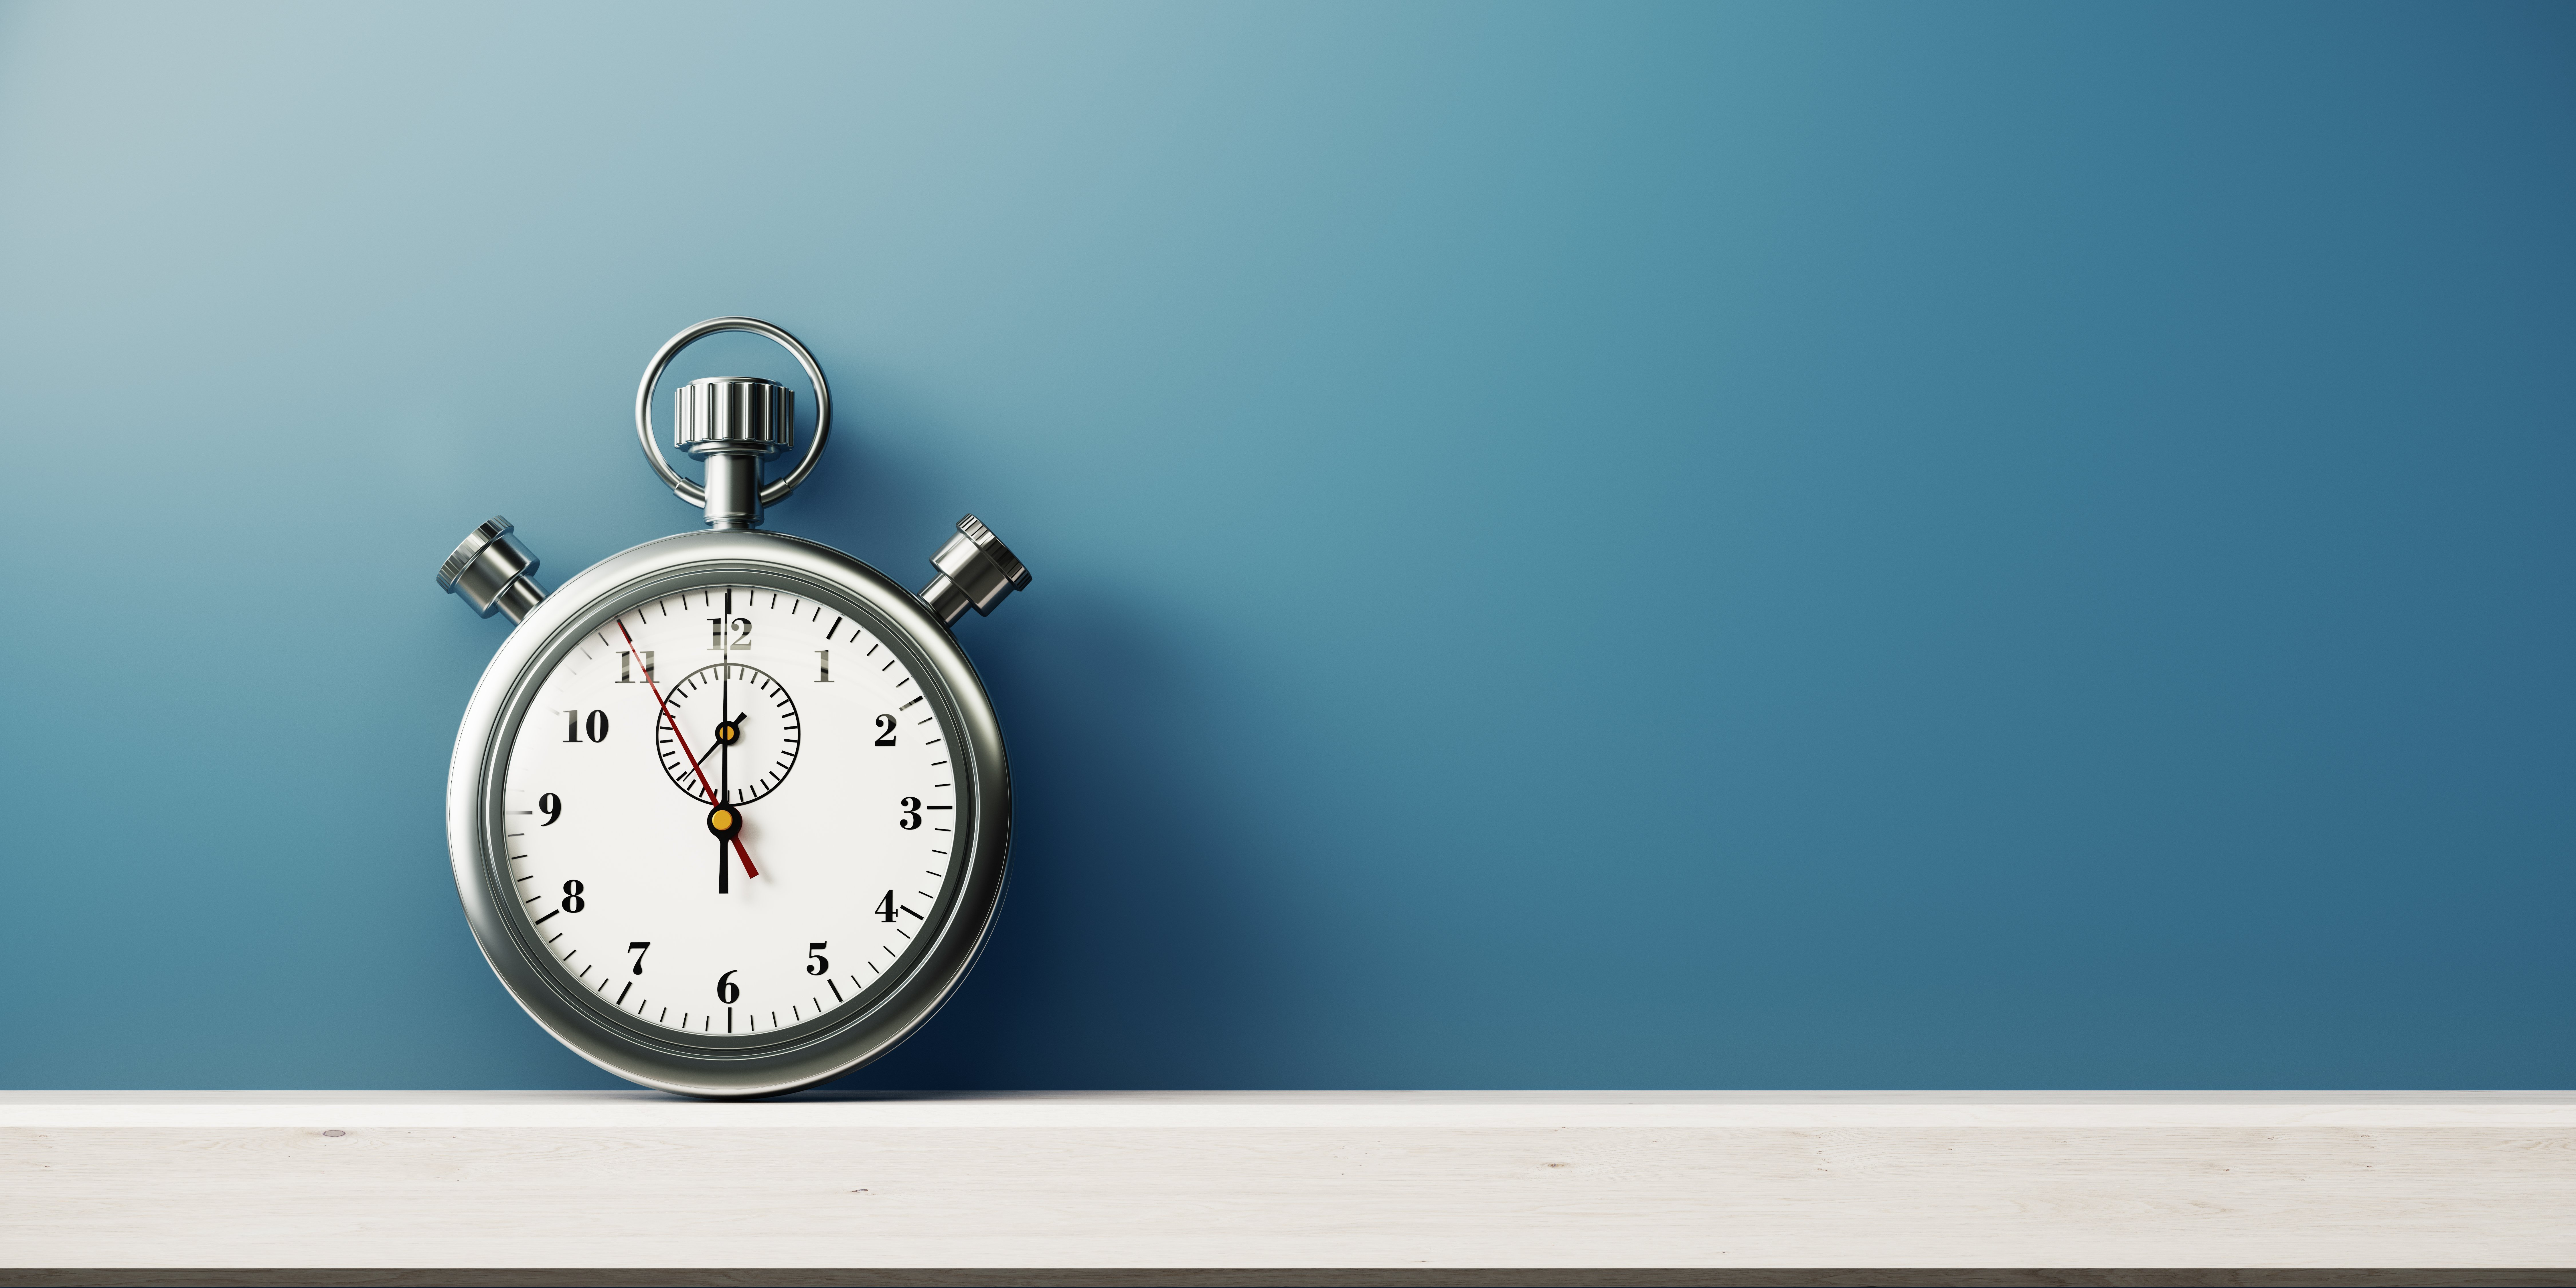 Silver Colored Stopwatch In Front of Blue Wall